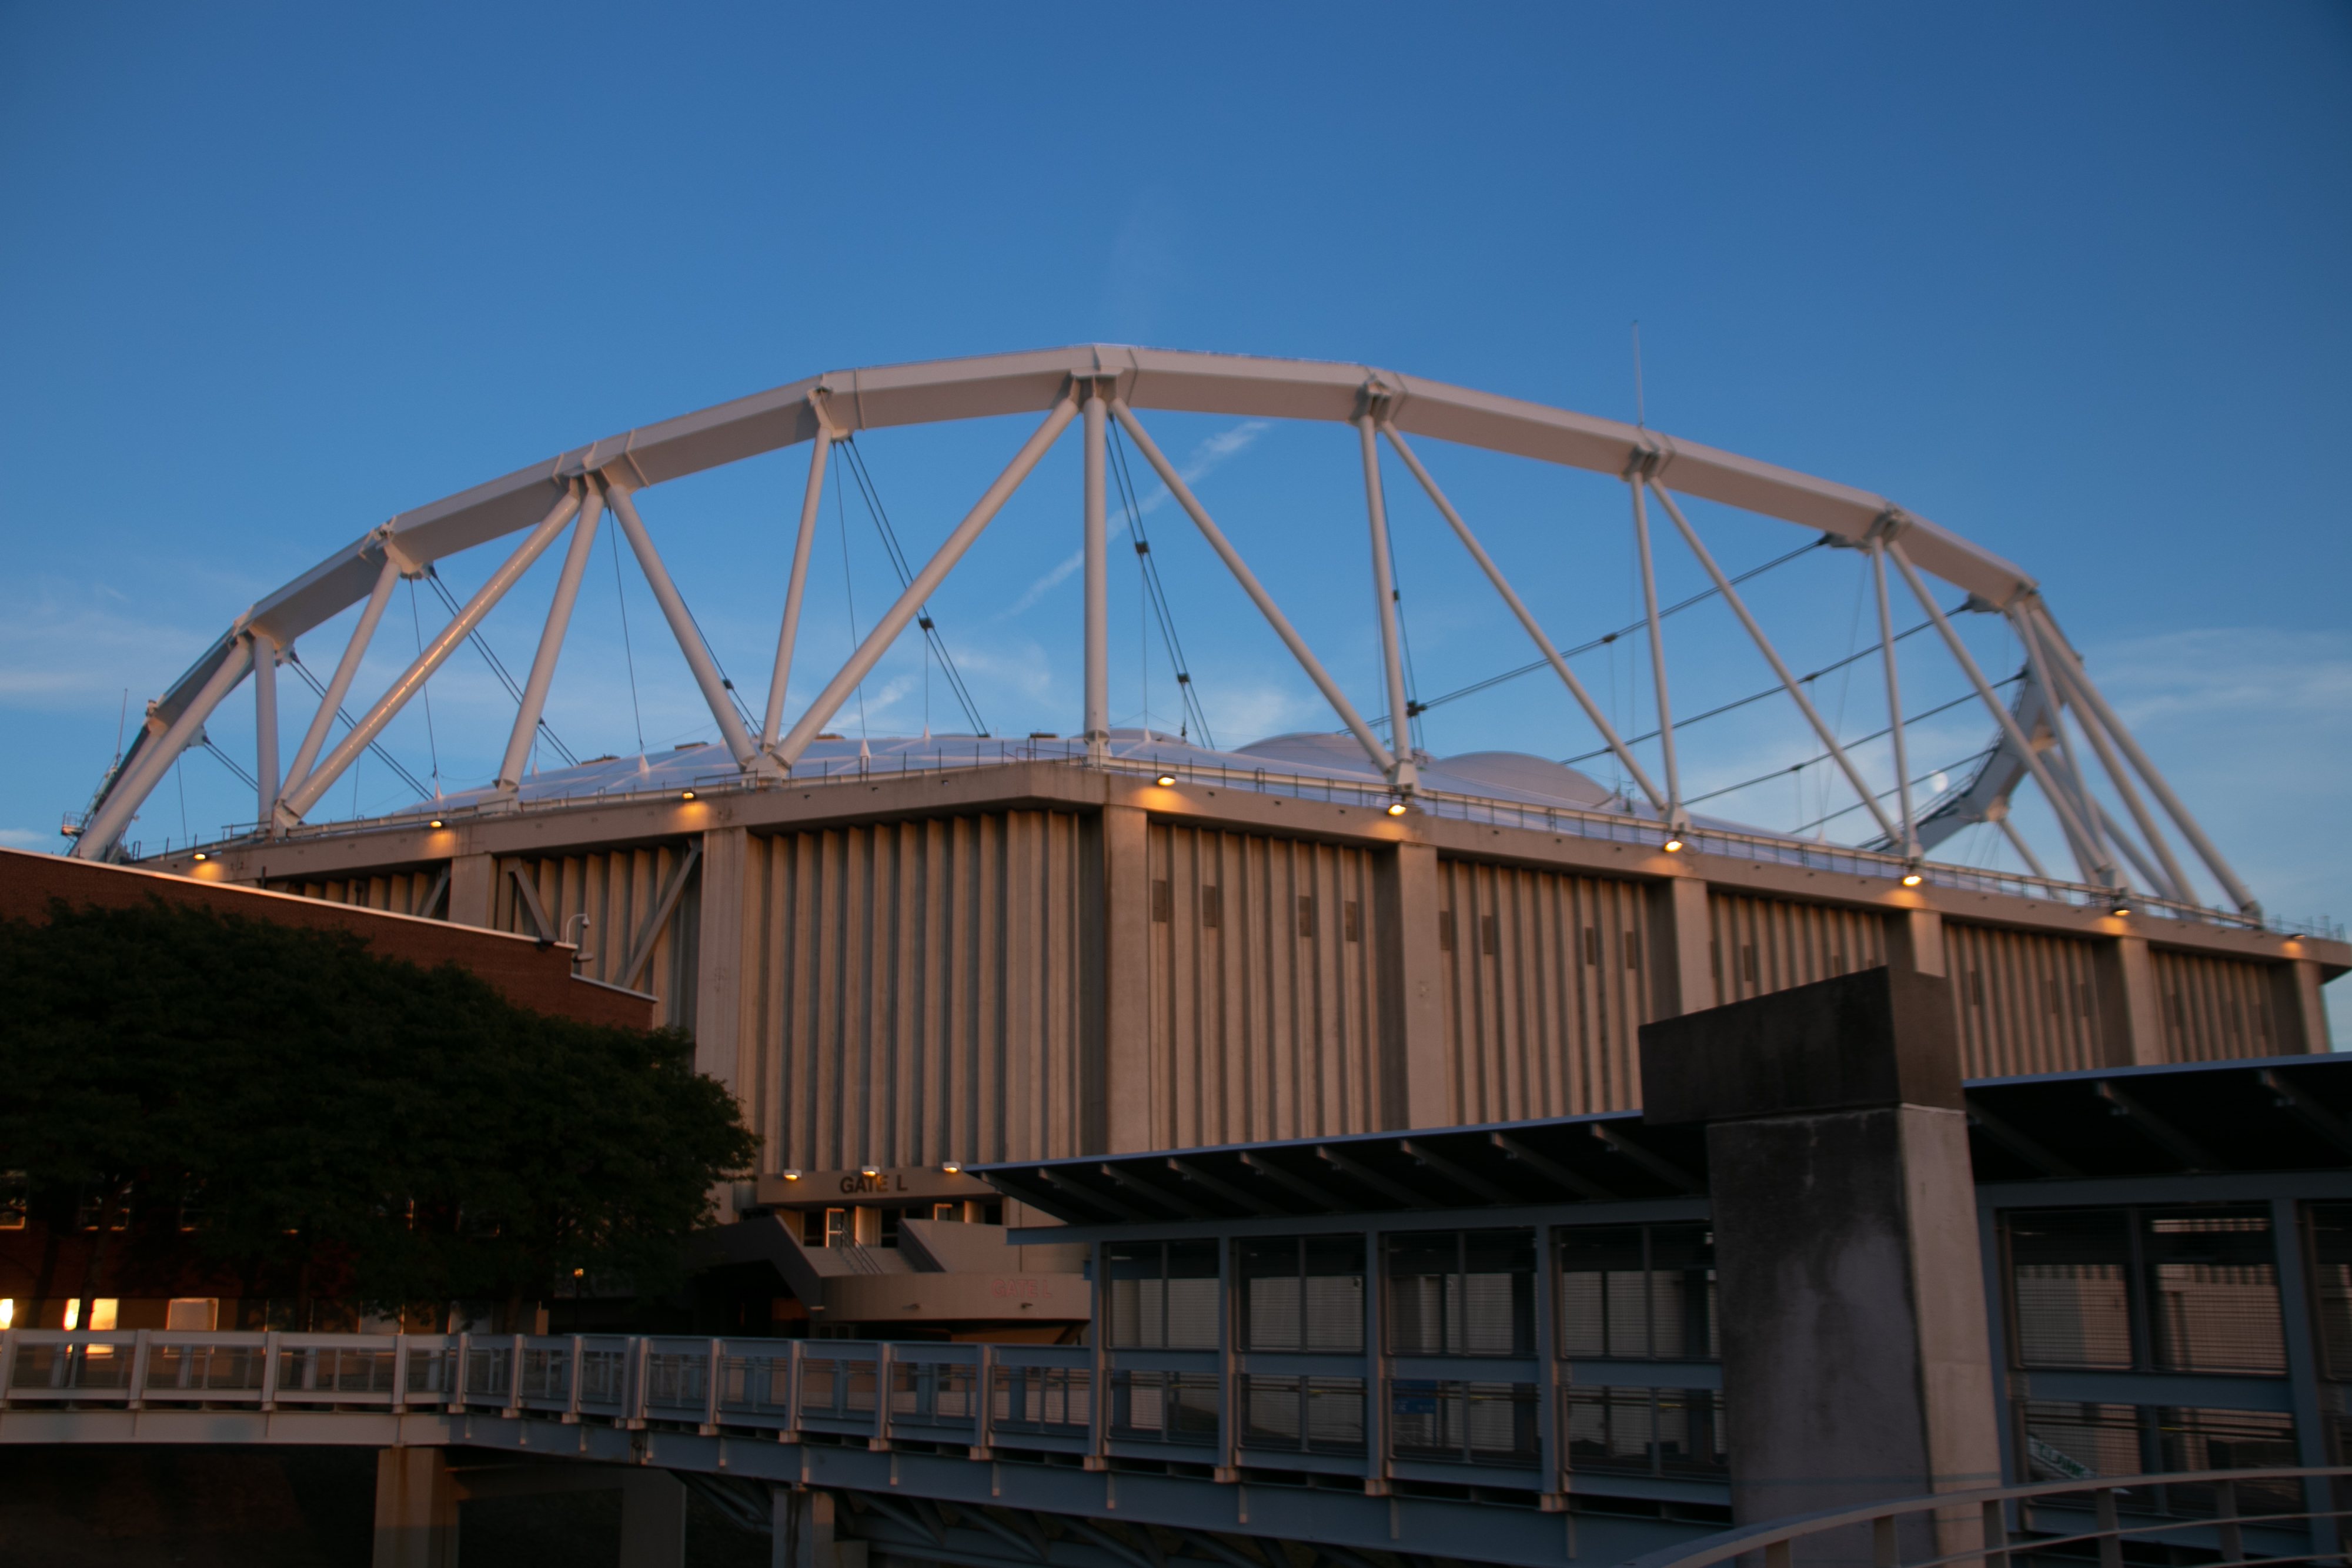 Syracuse University's former Carrier Dome, currently known as the Stadium.